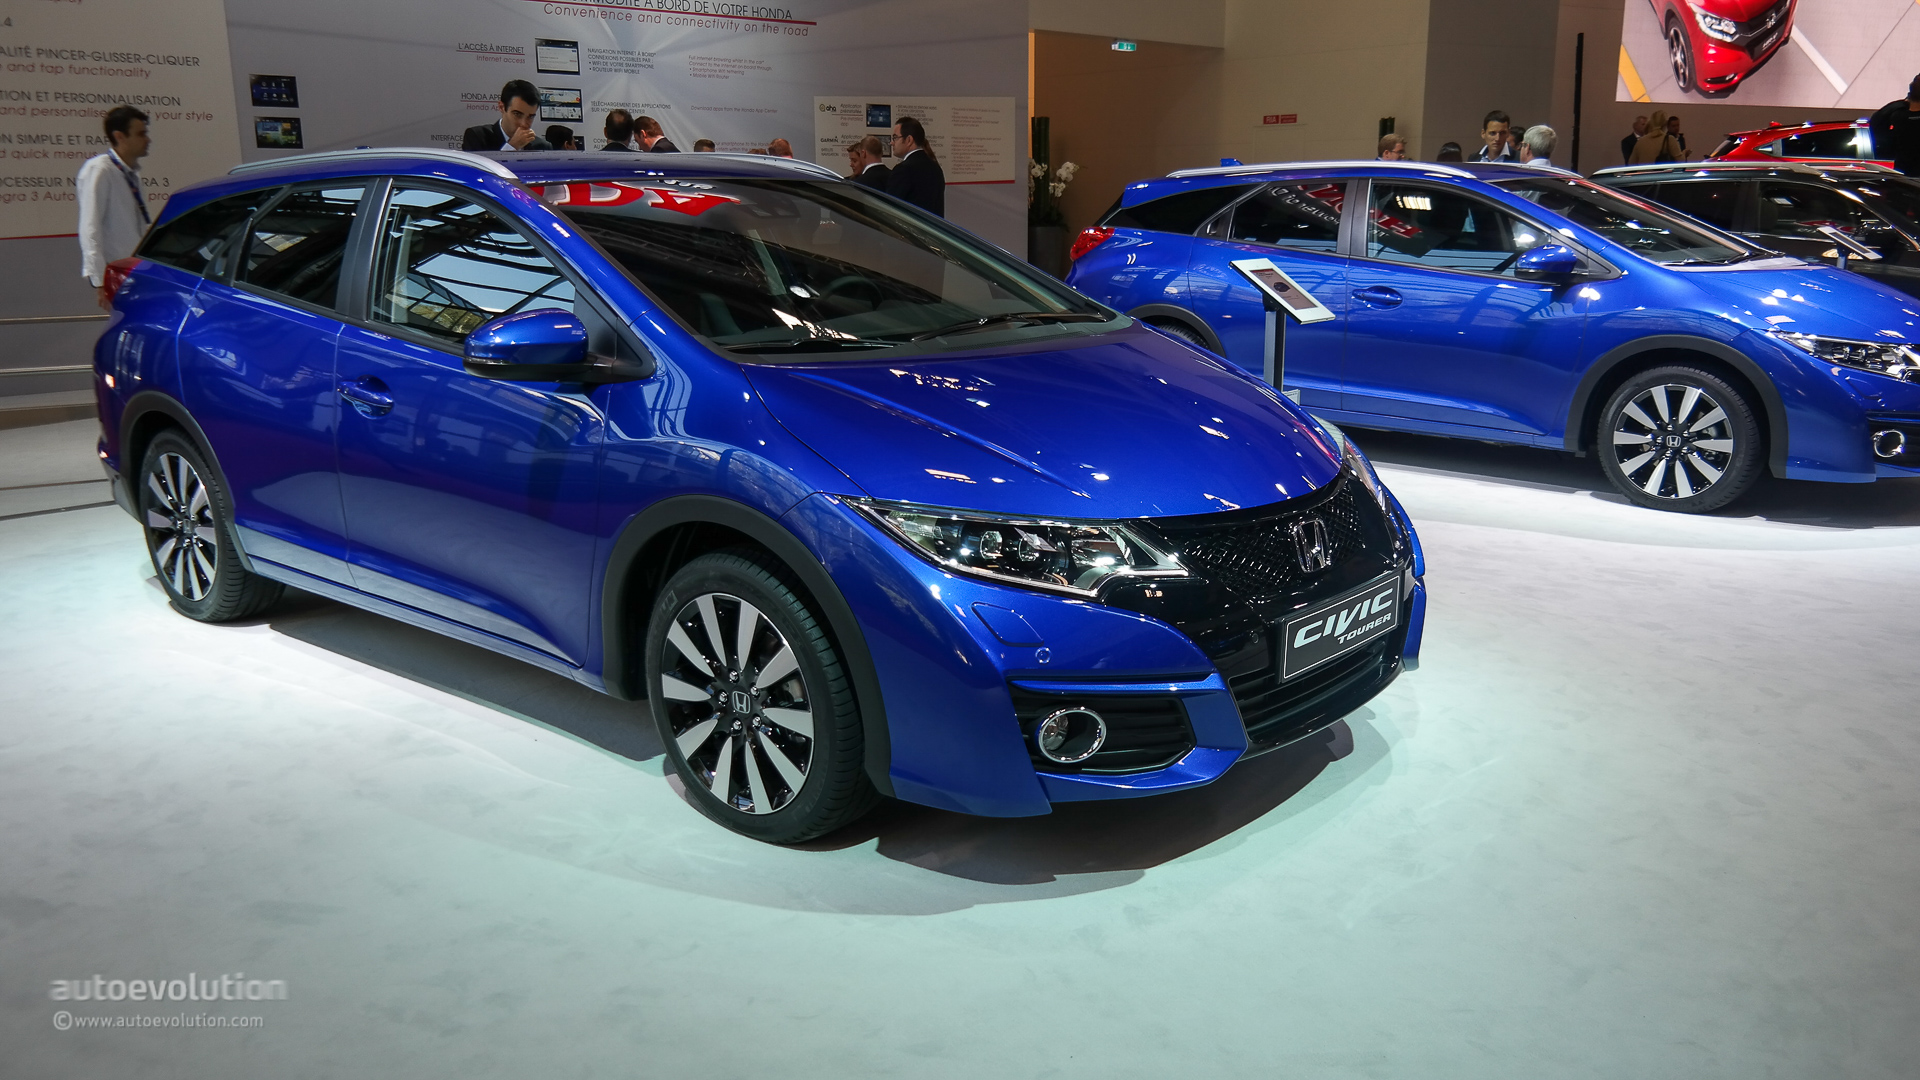 Honda Civic Tourer 2018 >> Honda Civic 5-Door Hatchback Coming to the US in 2016 - autoevolution